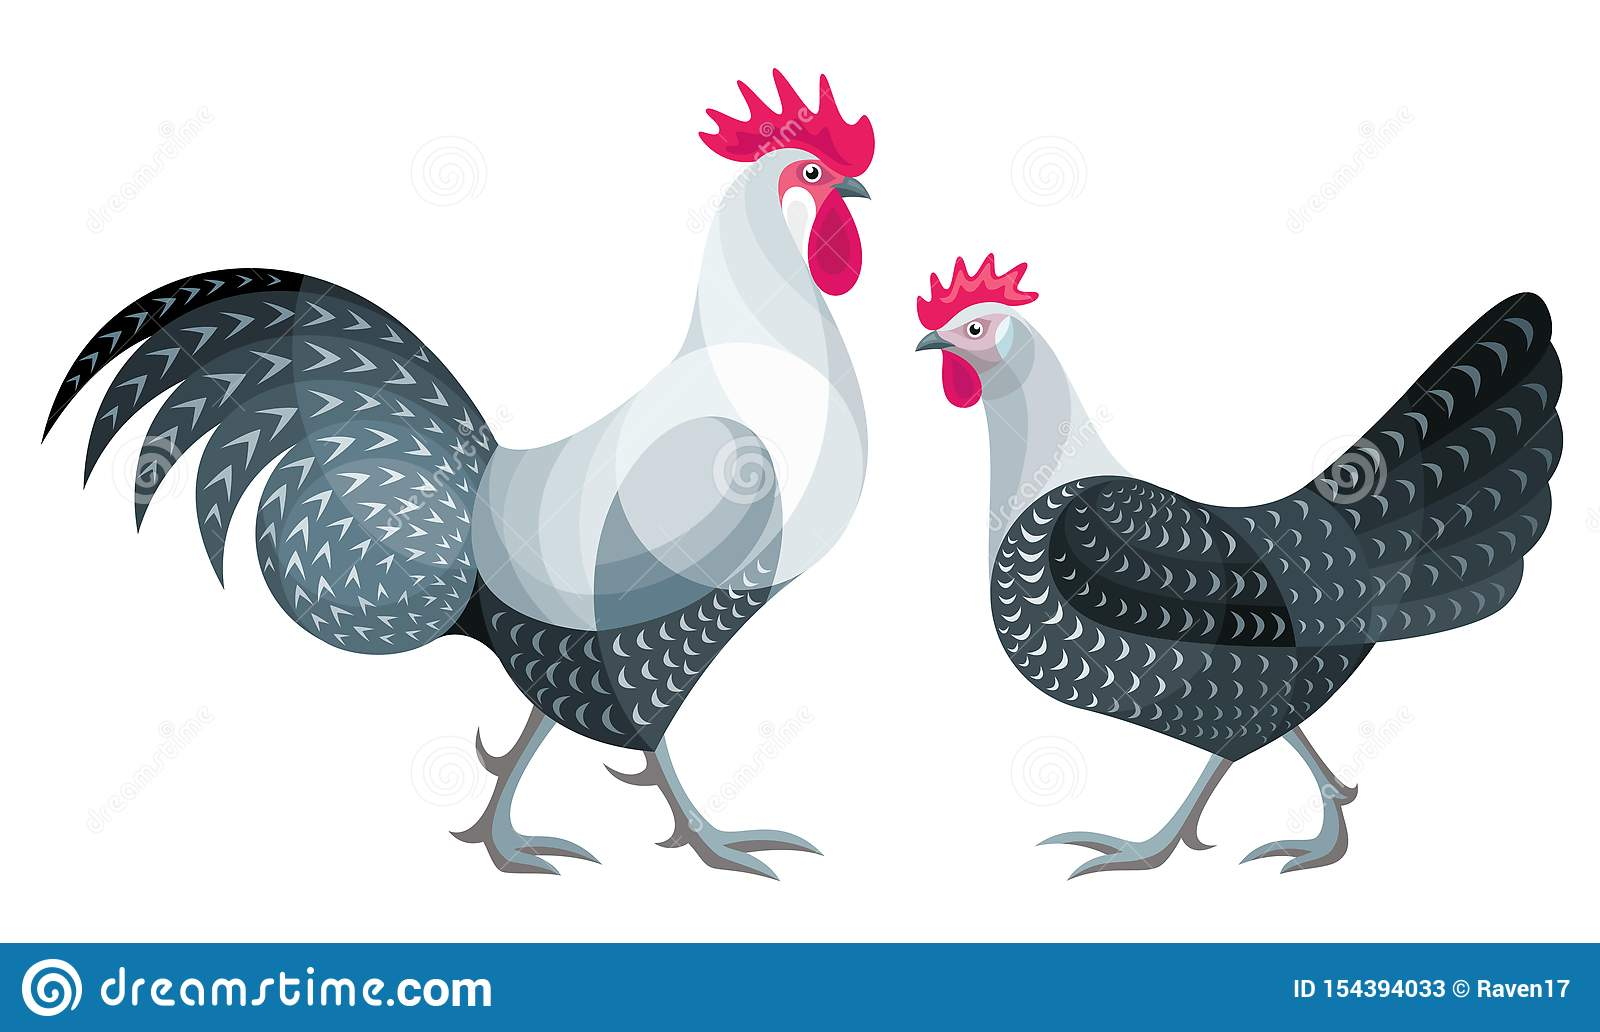 Stylized Chickens - vector illustration